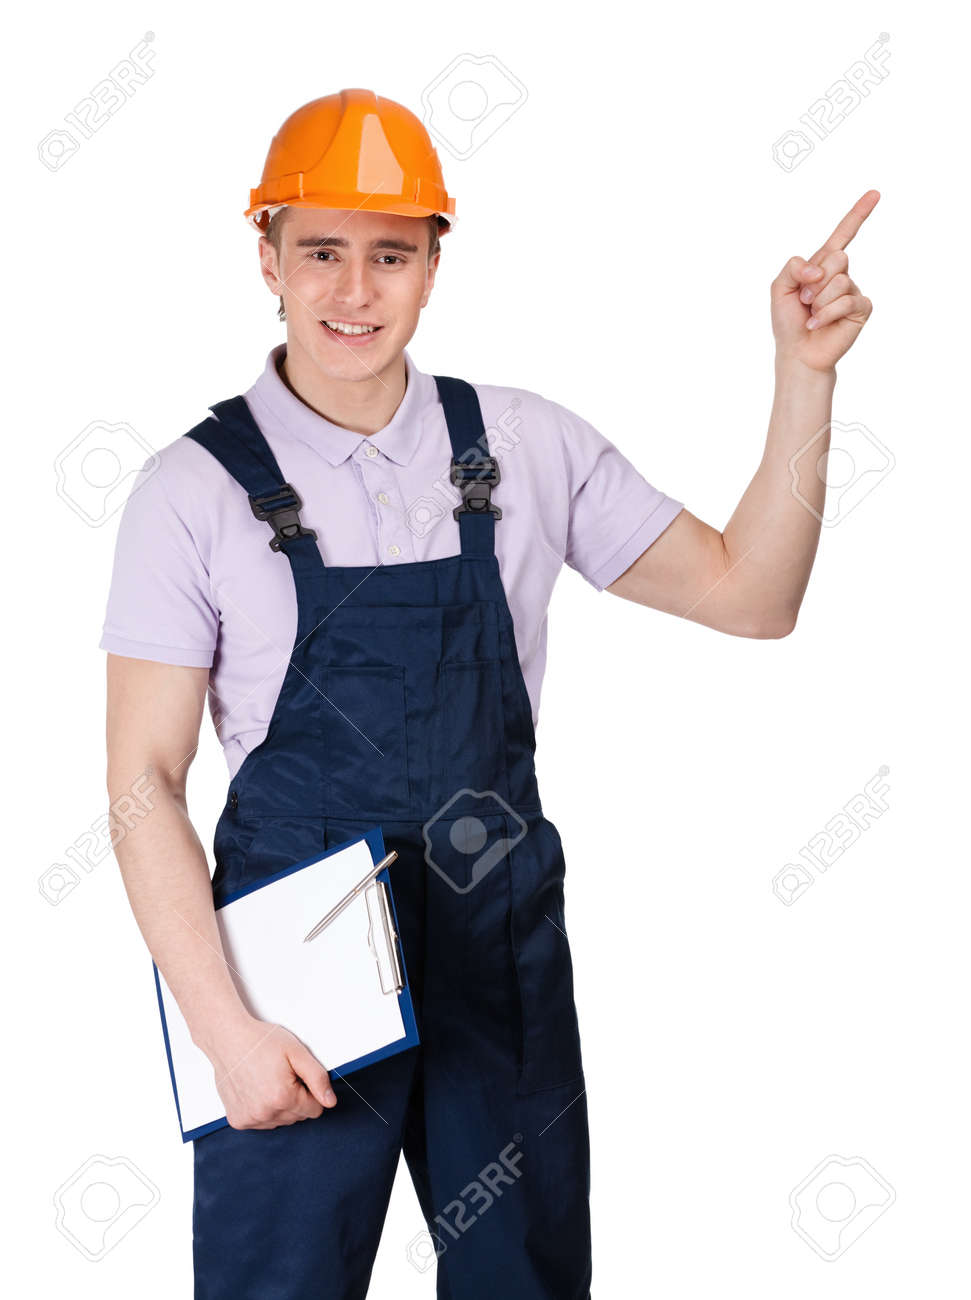 Foreman in orange hard hat and with tablet pointing upward, isolated on white Stock Photo - 15530472